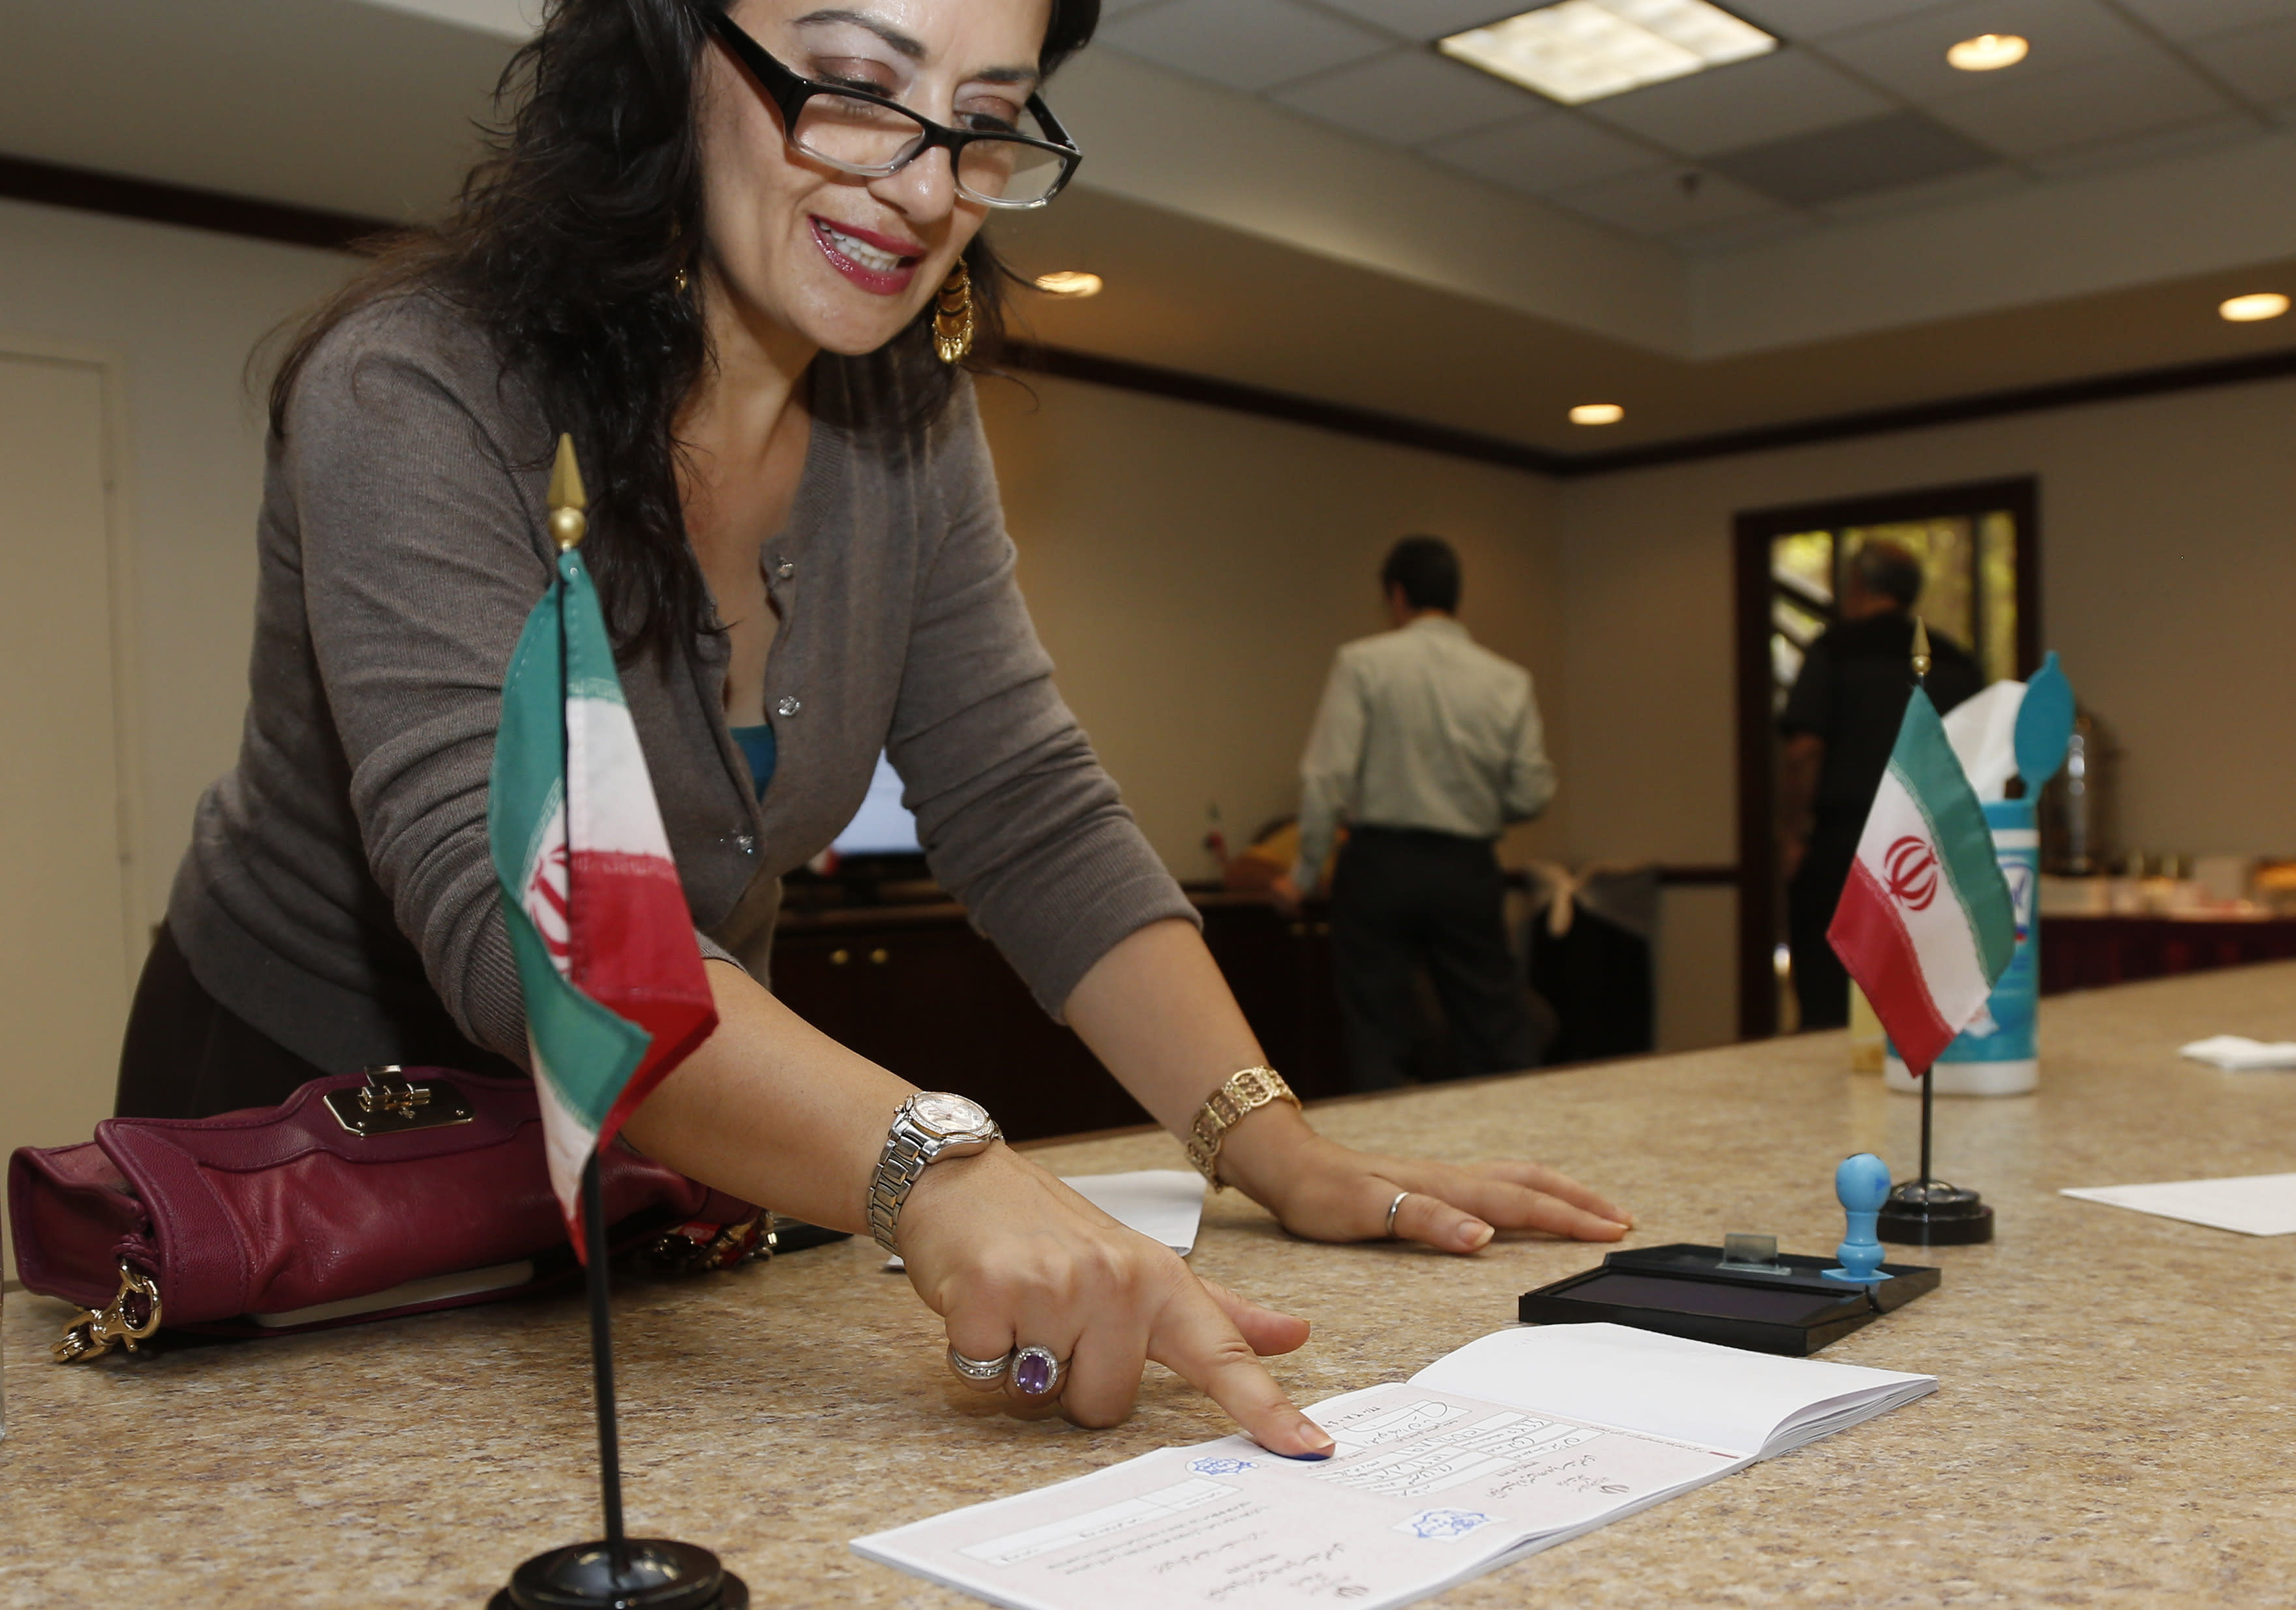 Marjan Seirofi-Pour, of Norman, Okla., presses her finger to her ballot as she votes in the Iranian Presidential election in Oklahoma City, Friday, June 14, 2013. Iranian-Americans and expatriates cast ballots Friday in polling places across the United States, joining their countrymen half a world away in selecting the next Iranian president. (AP Photo/Sue Ogrocki)